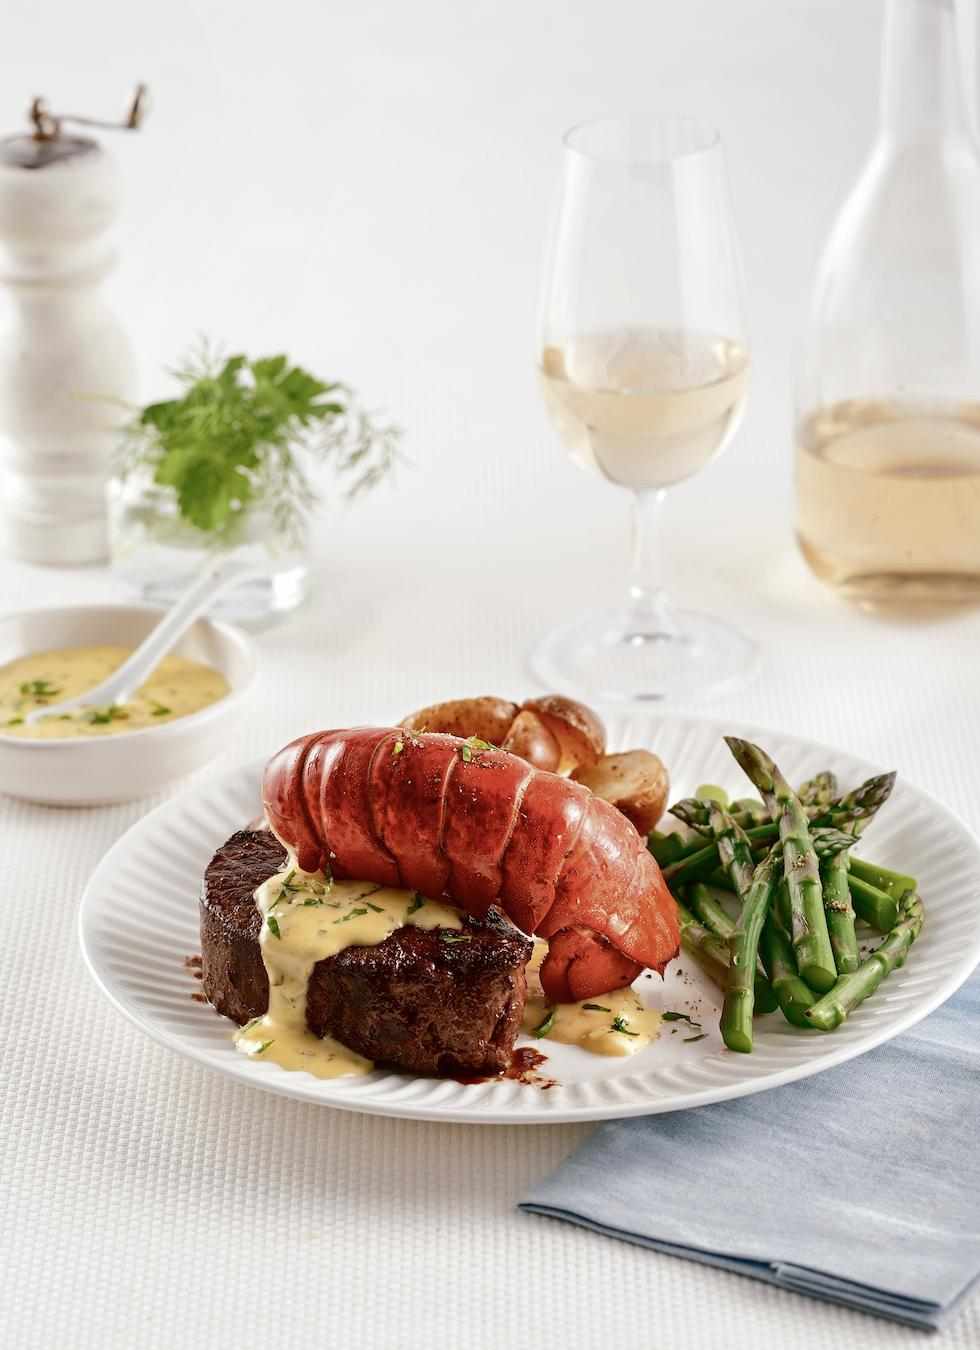 Surf and turf de homard et sauce béarnaise